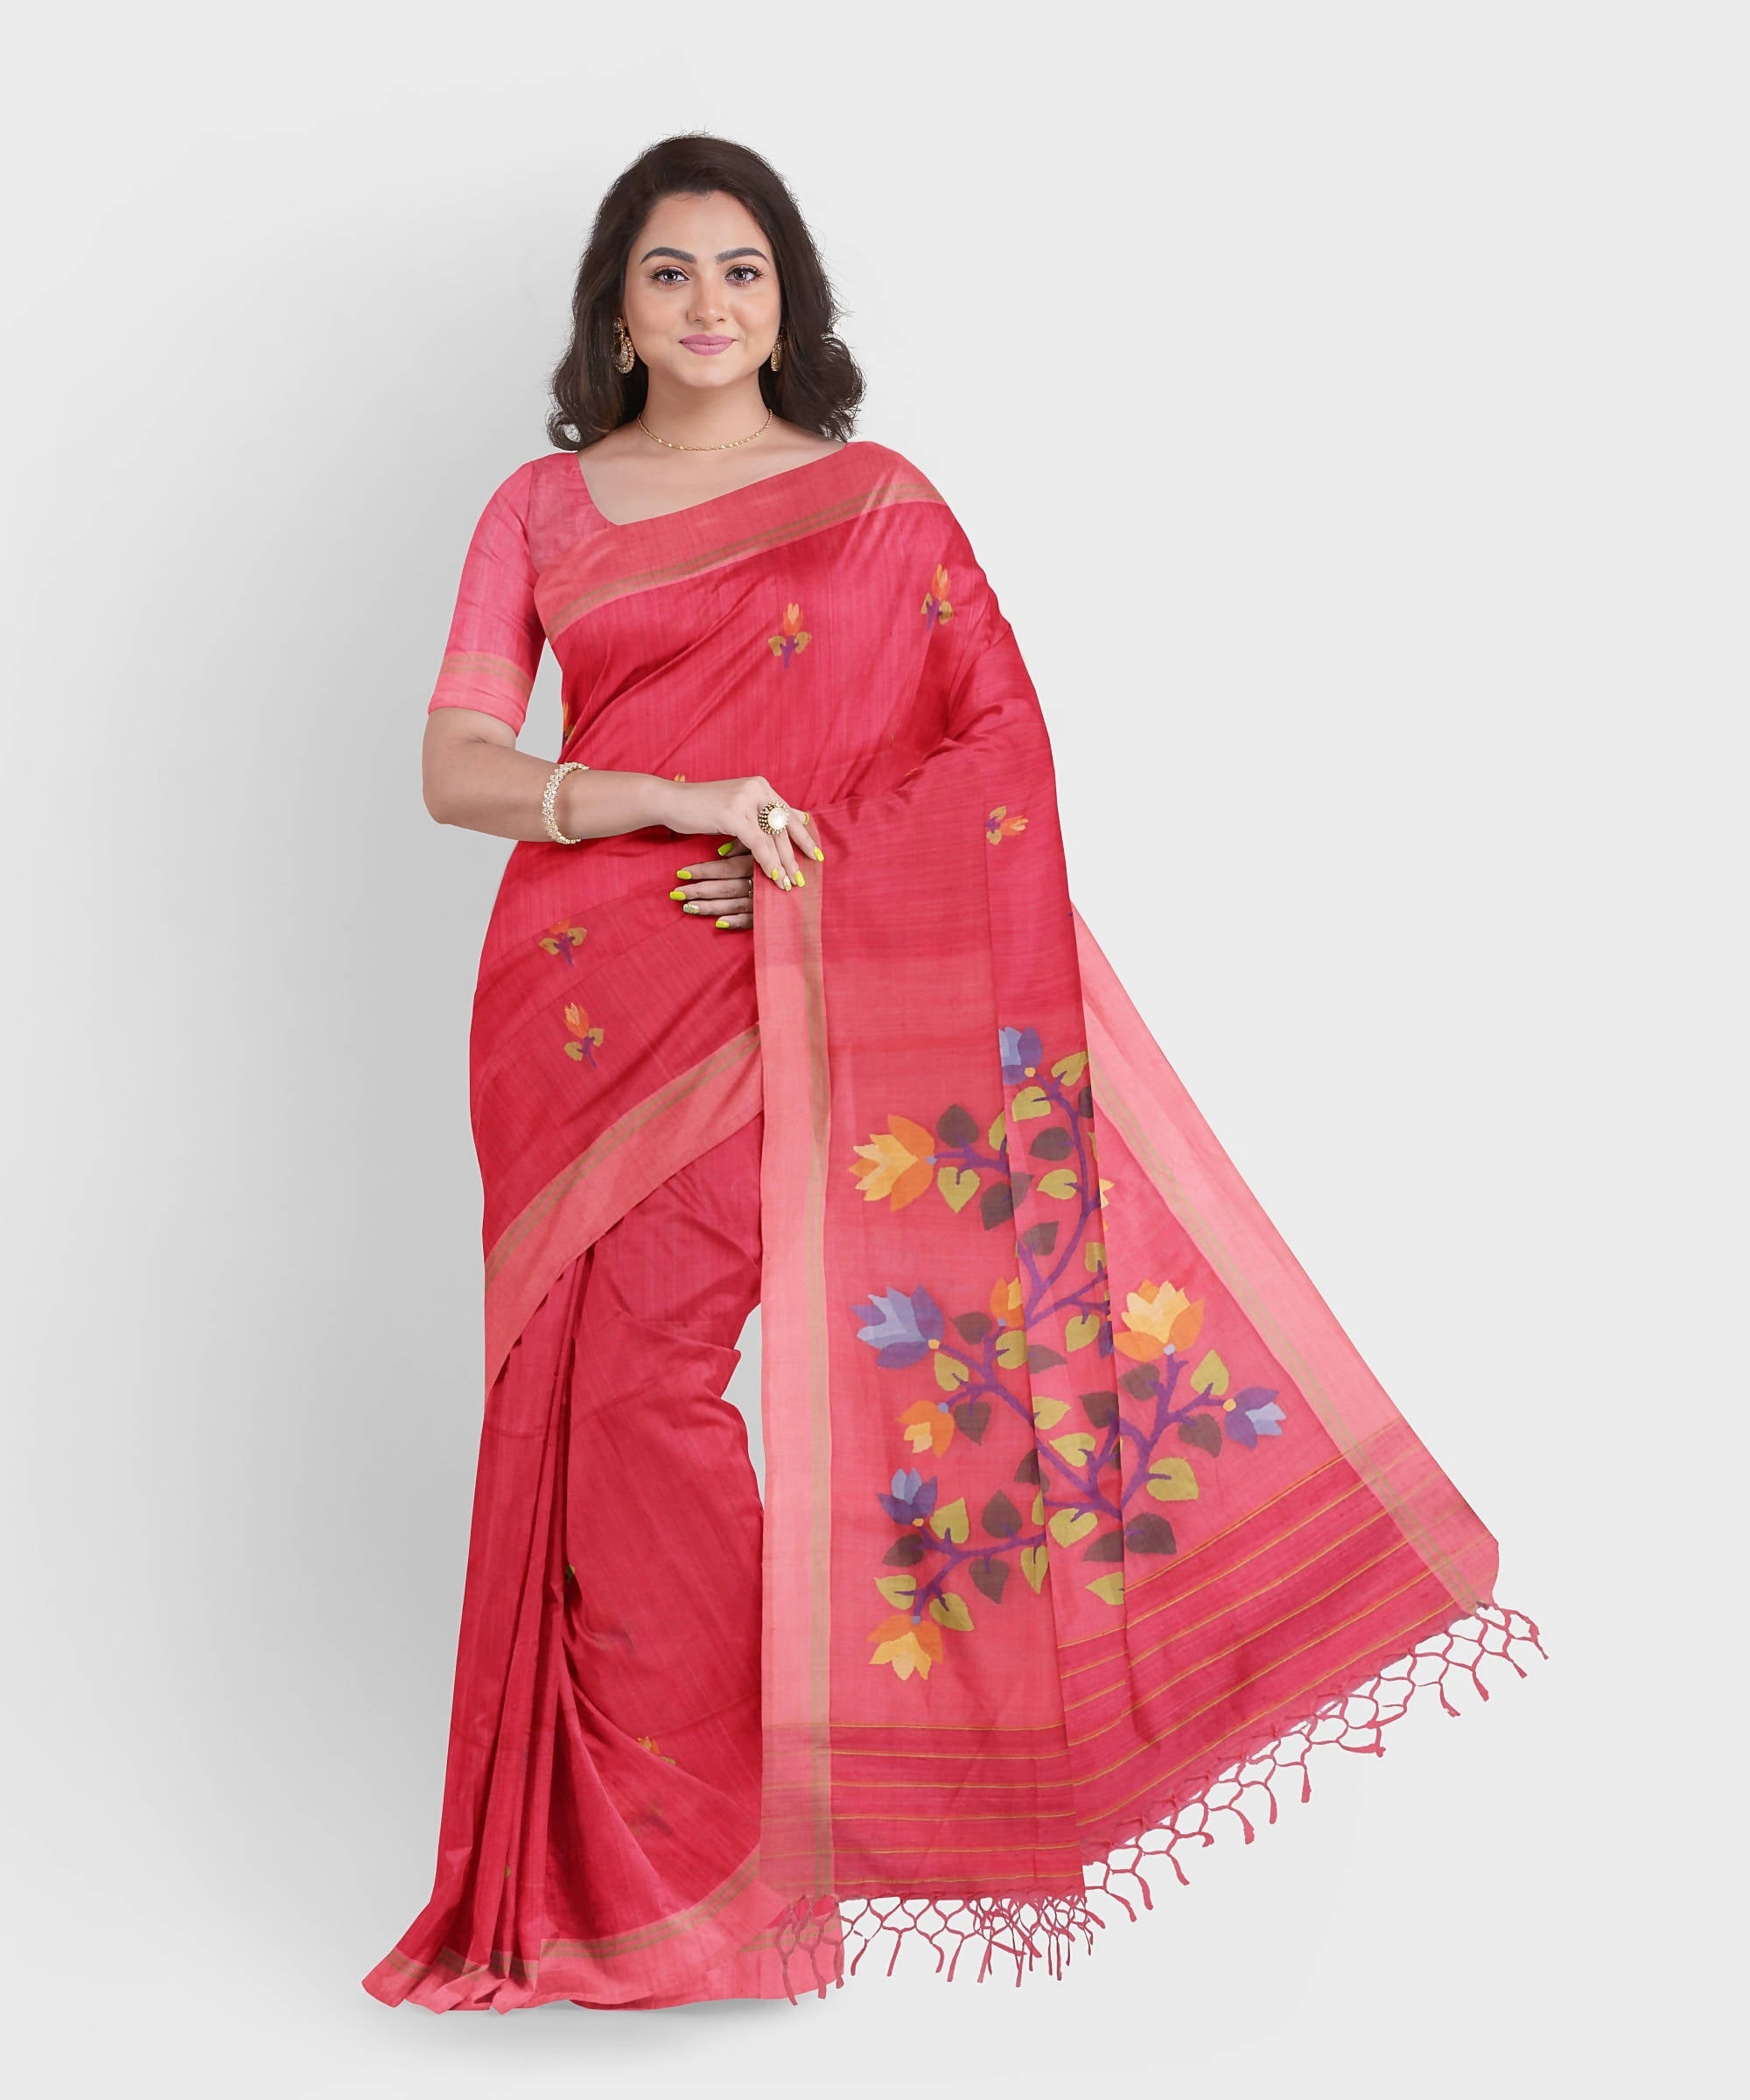 Biswa bangla handwoven peach pink matka silk jamdani saree